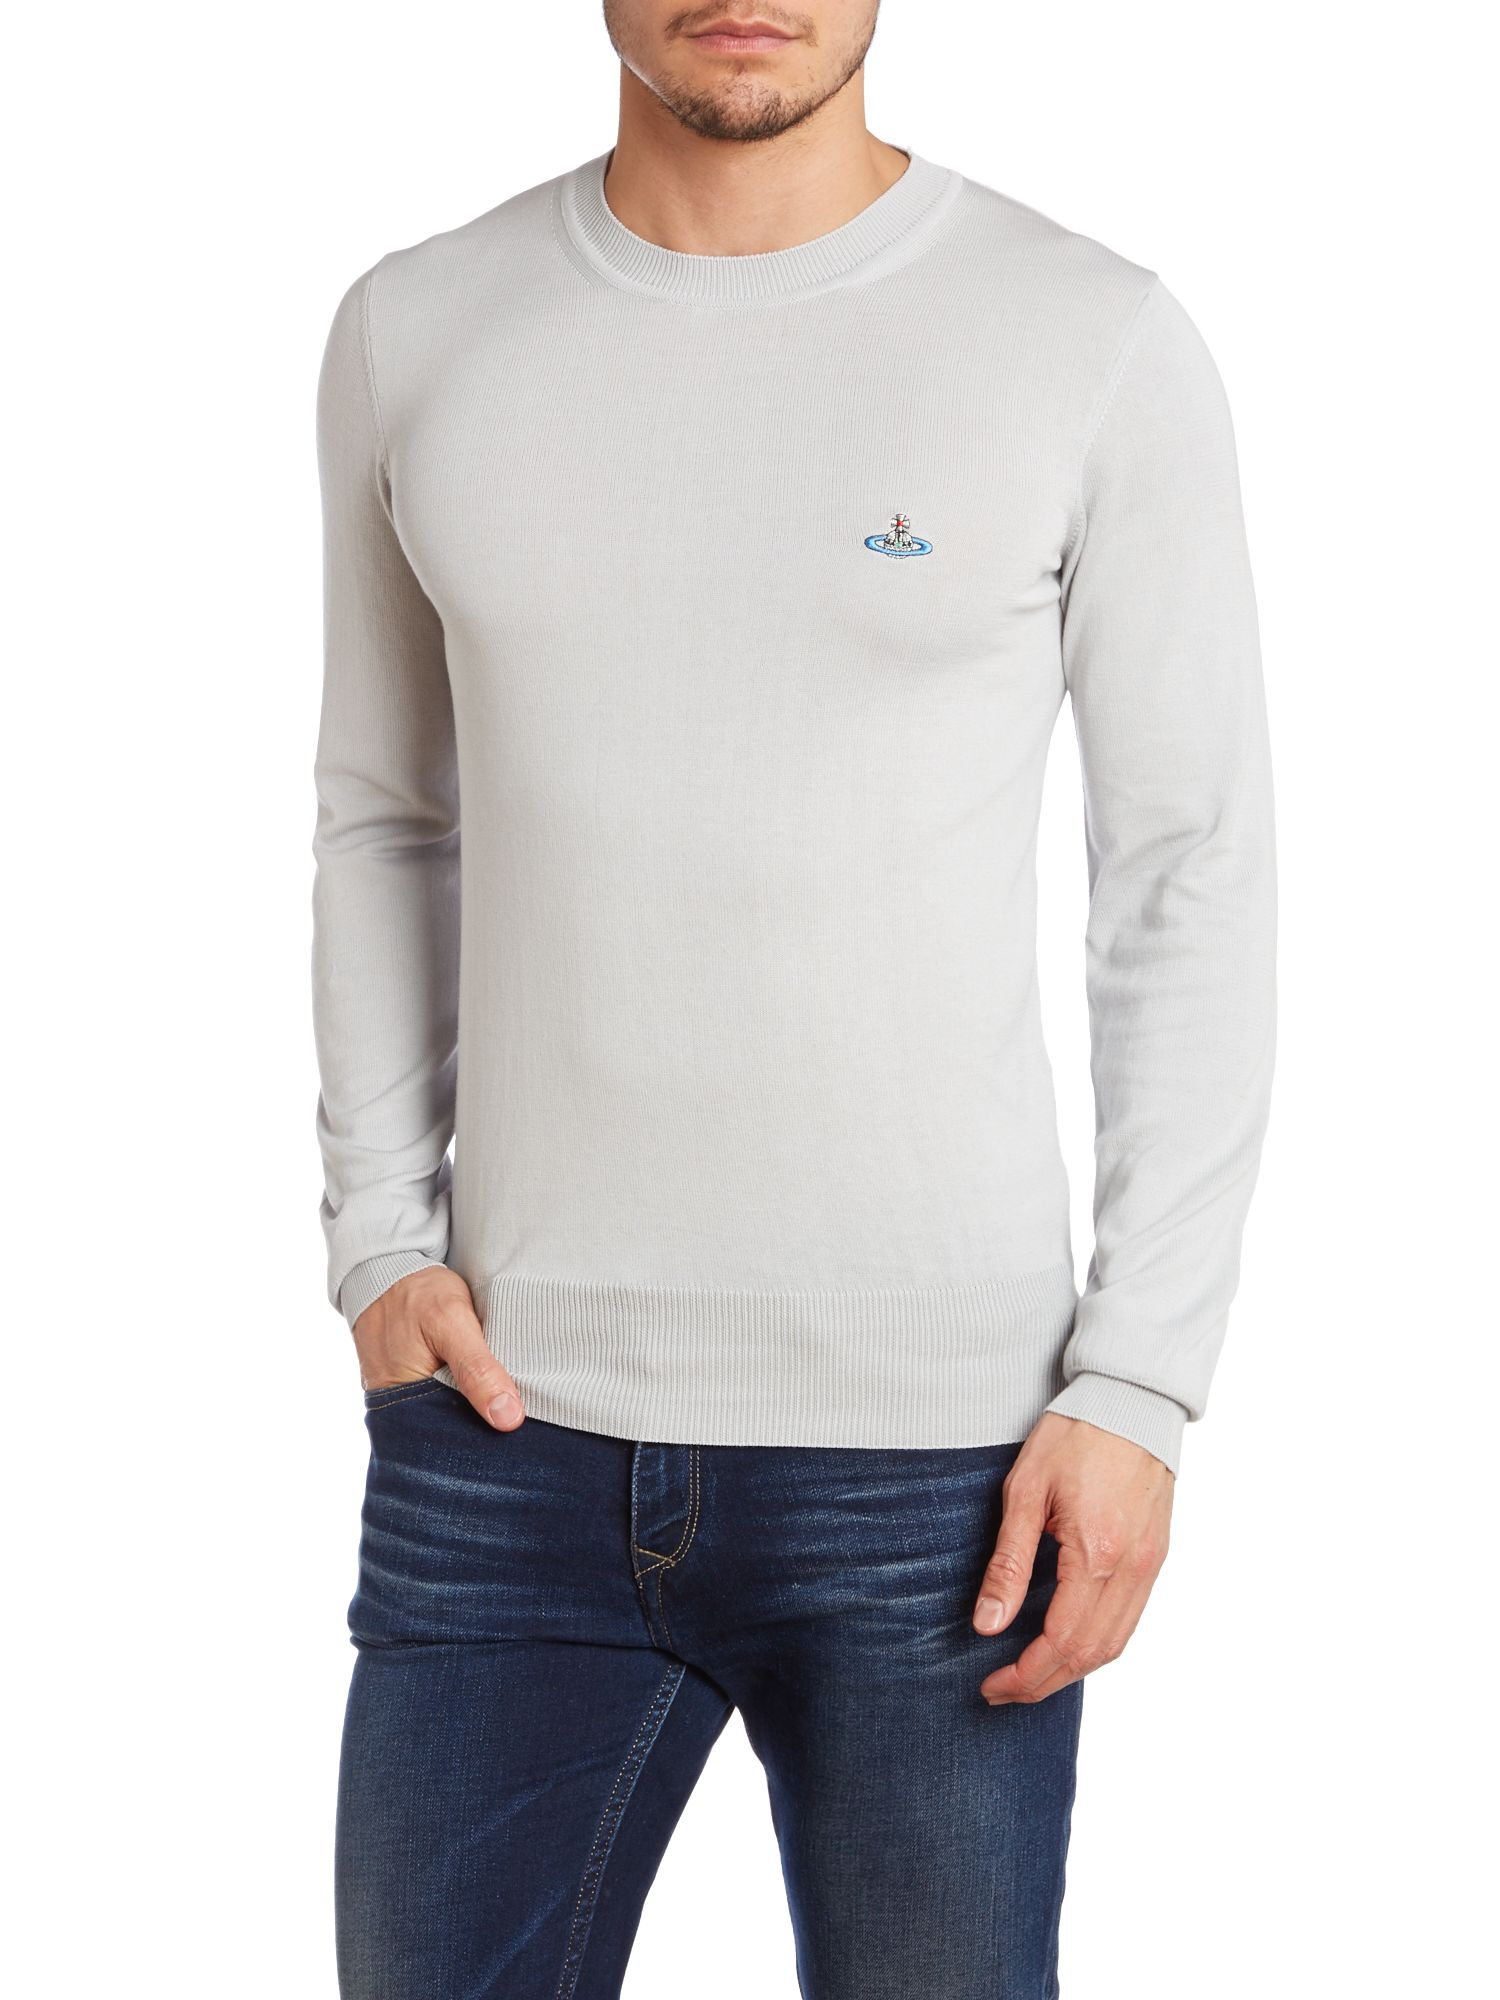 Crew neck basic knitwear